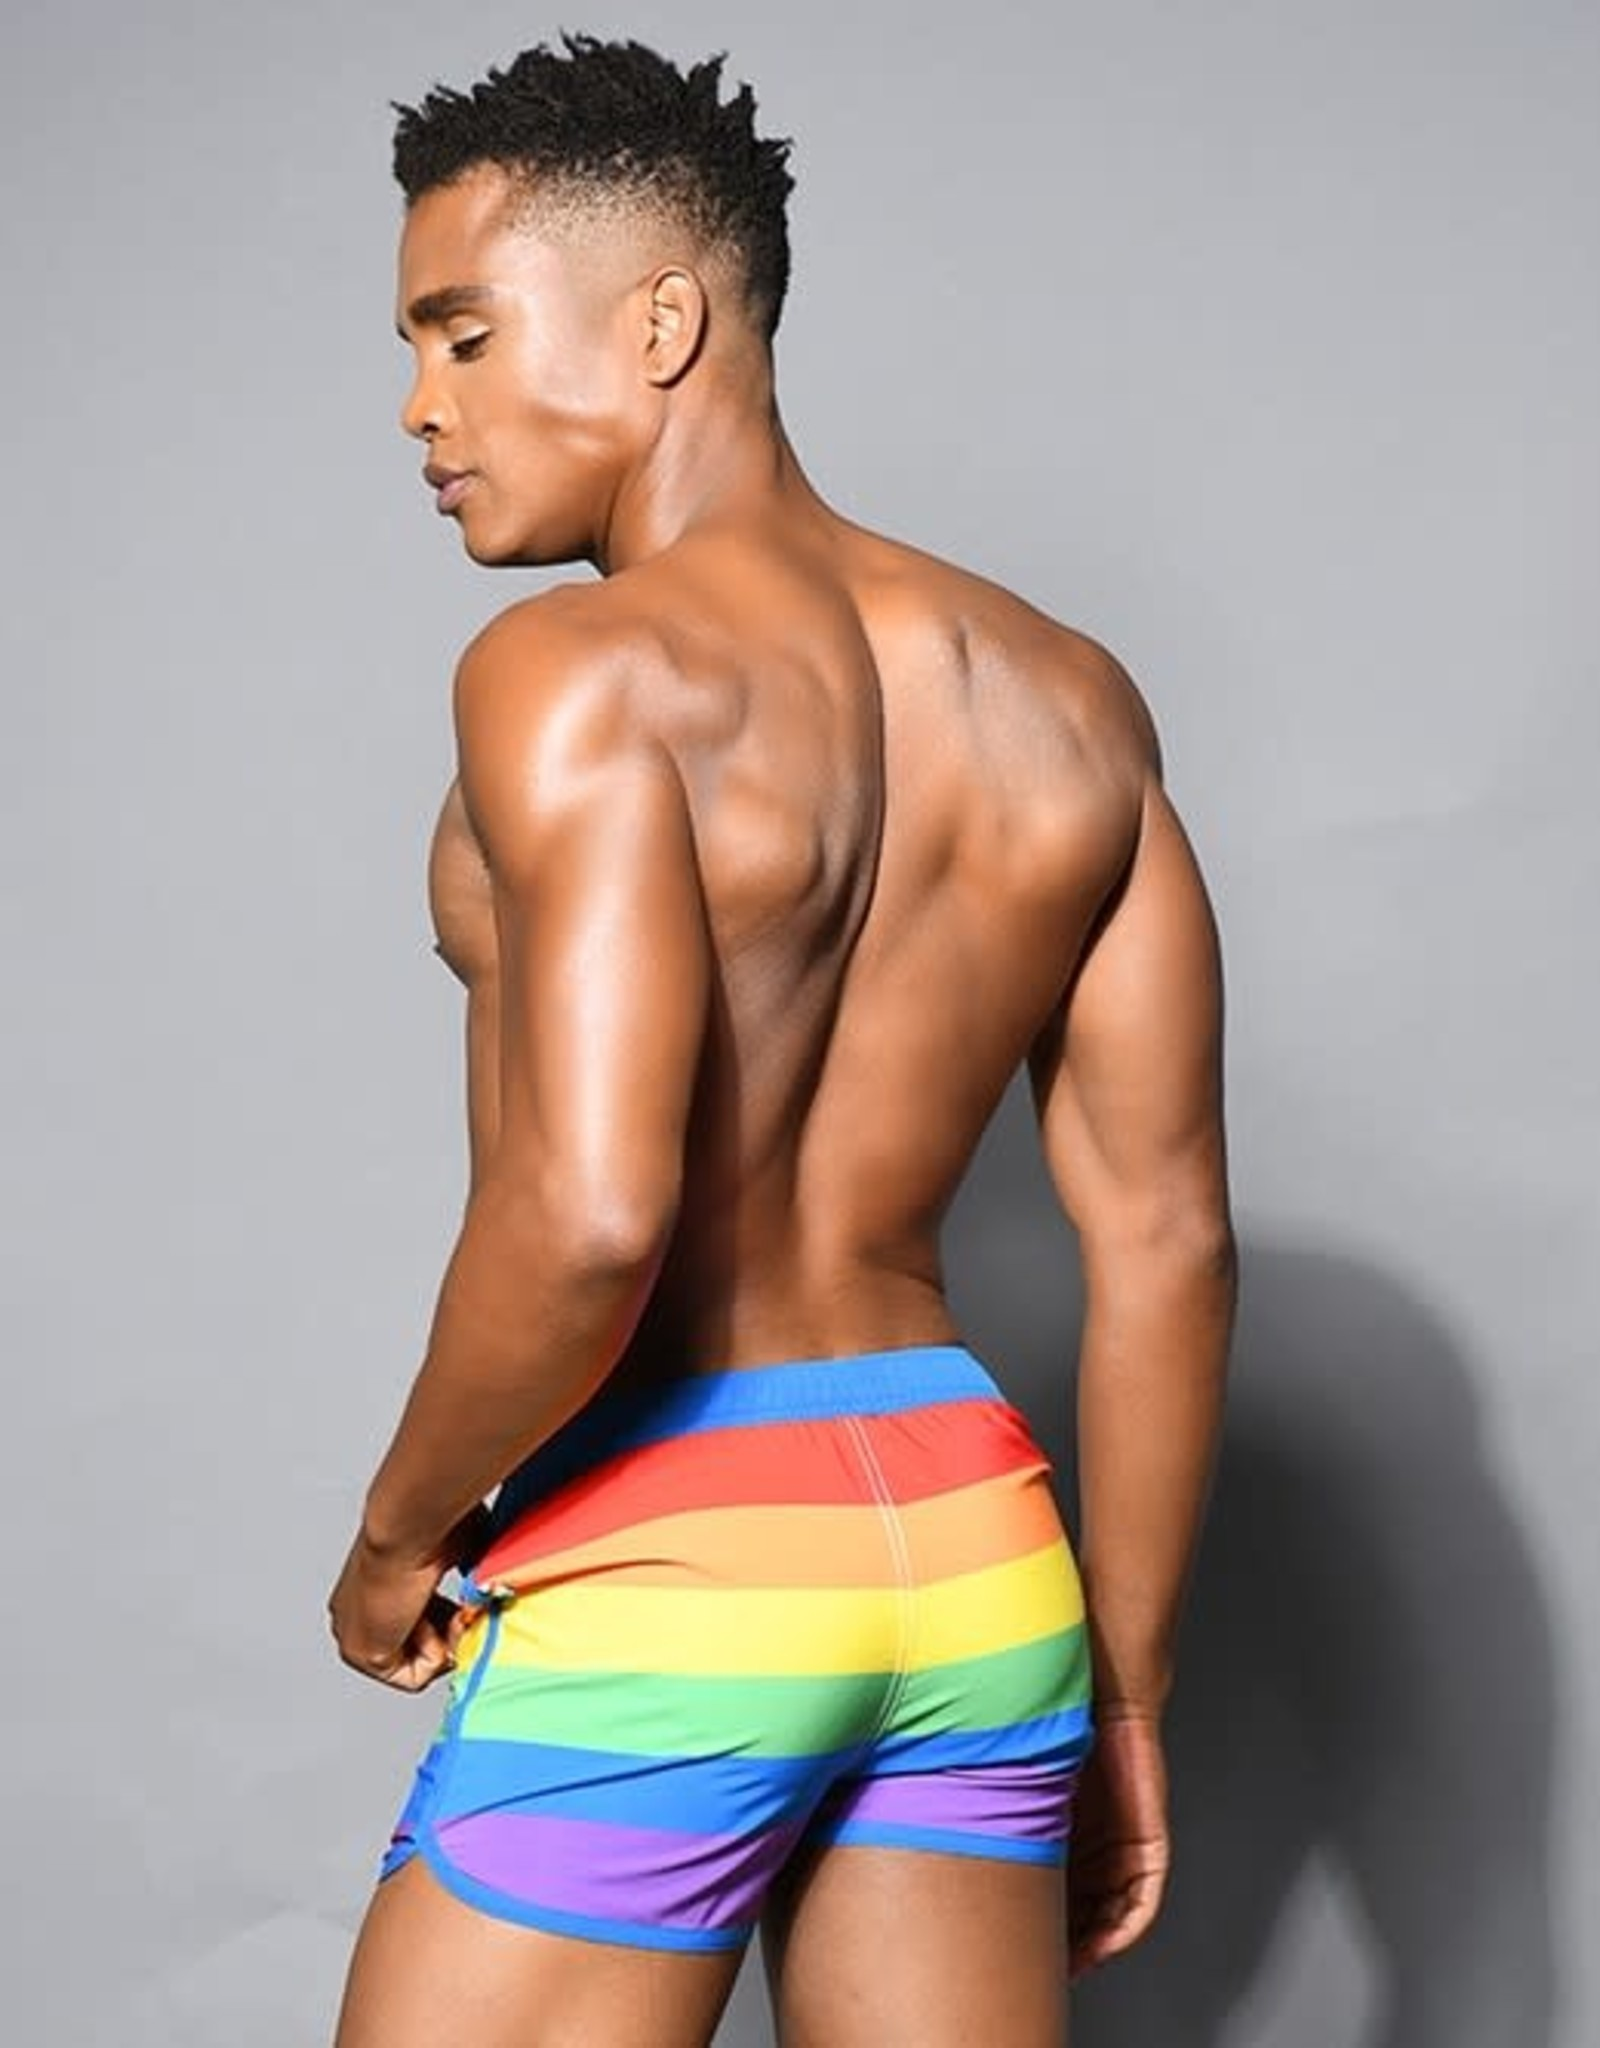 Andrew Christian Pride Stripe Swim Shorts (in store purchase only)